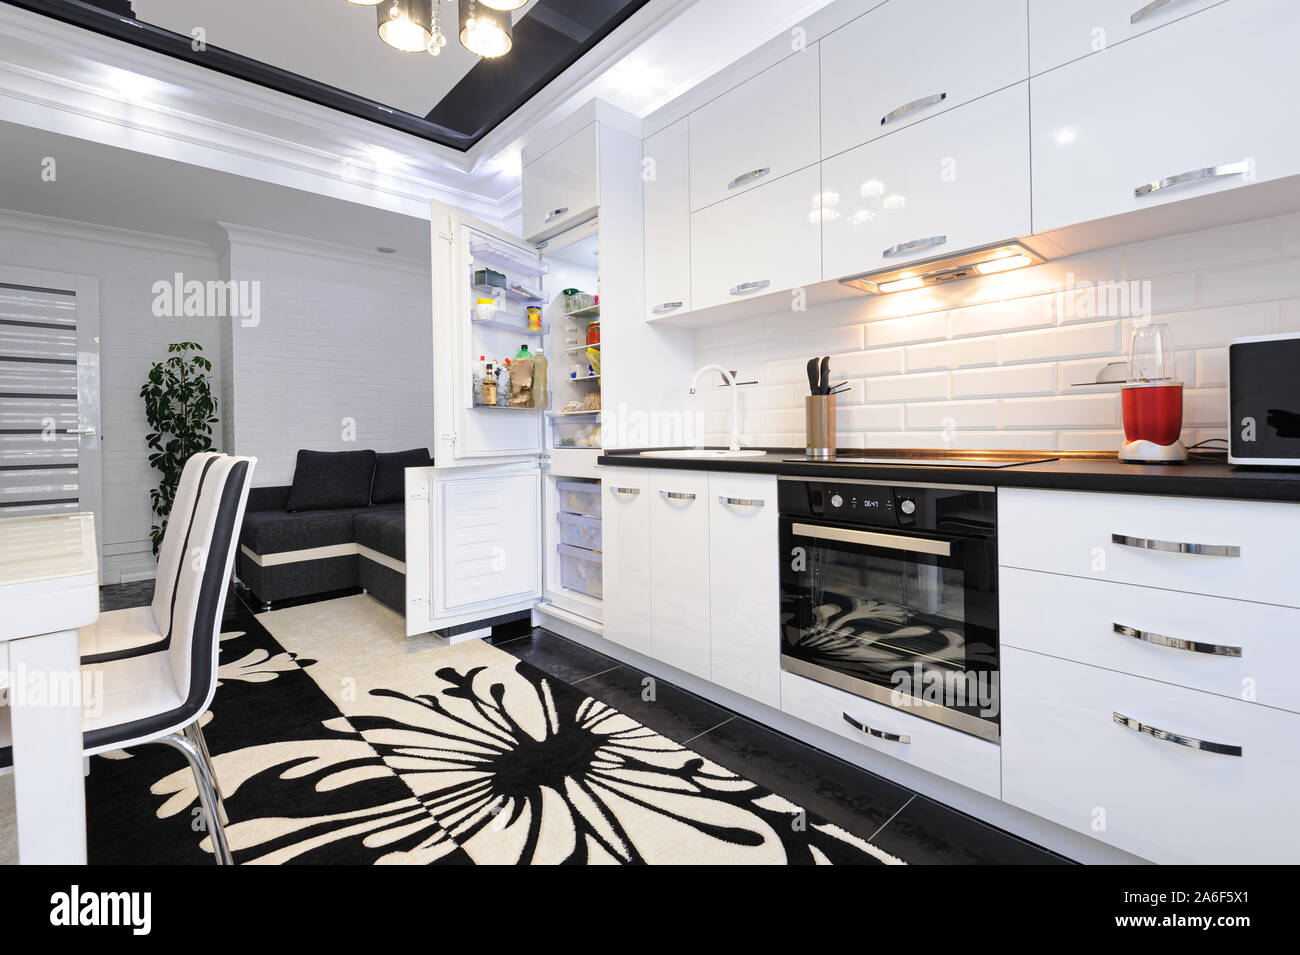 Luxury Modern Black And White Kitchen Interior Stock Photo Alamy